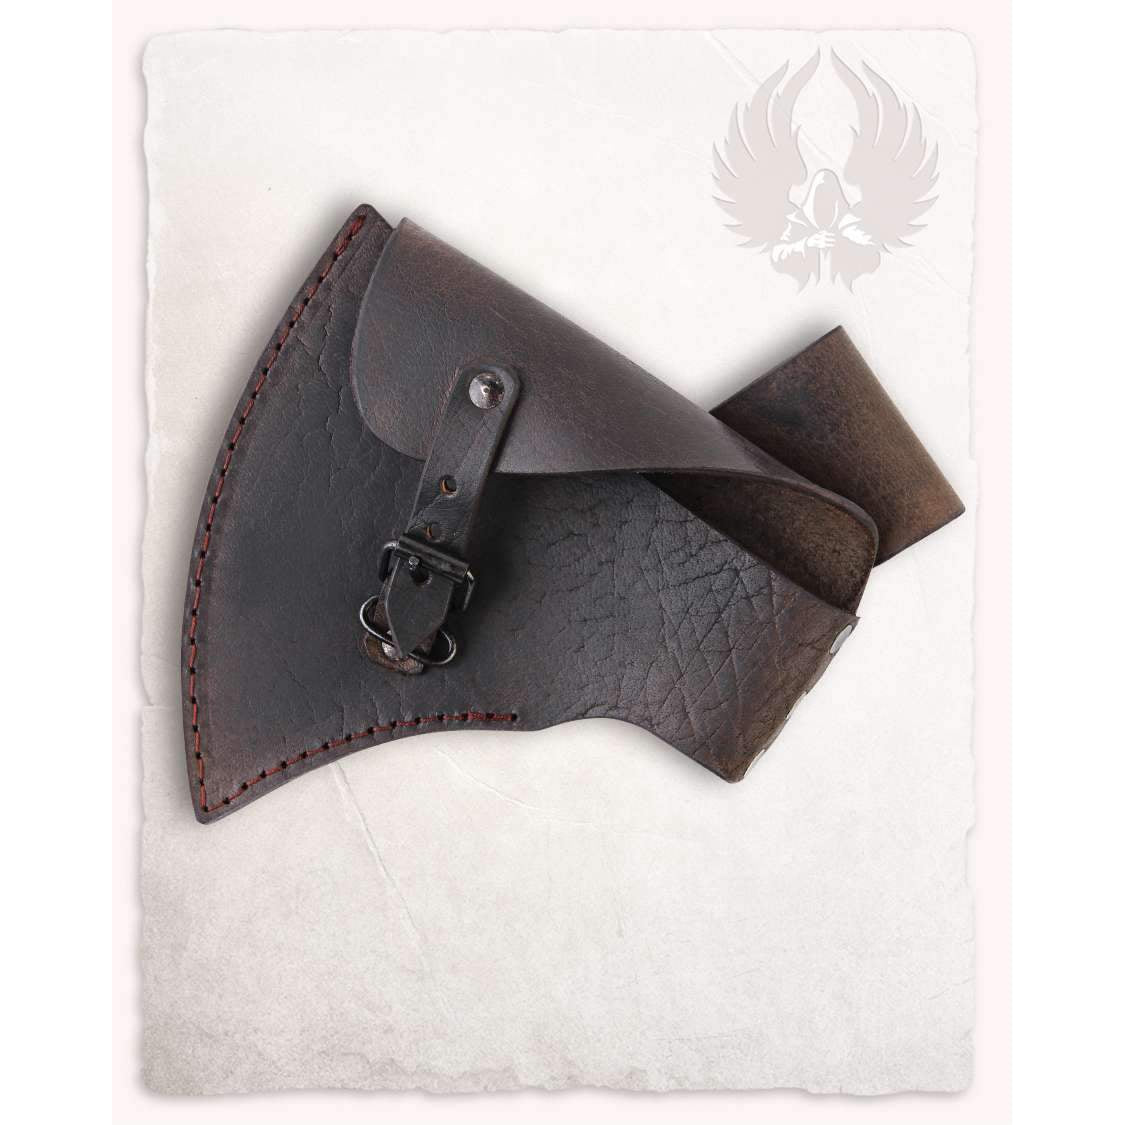 Erich hatchet sheath